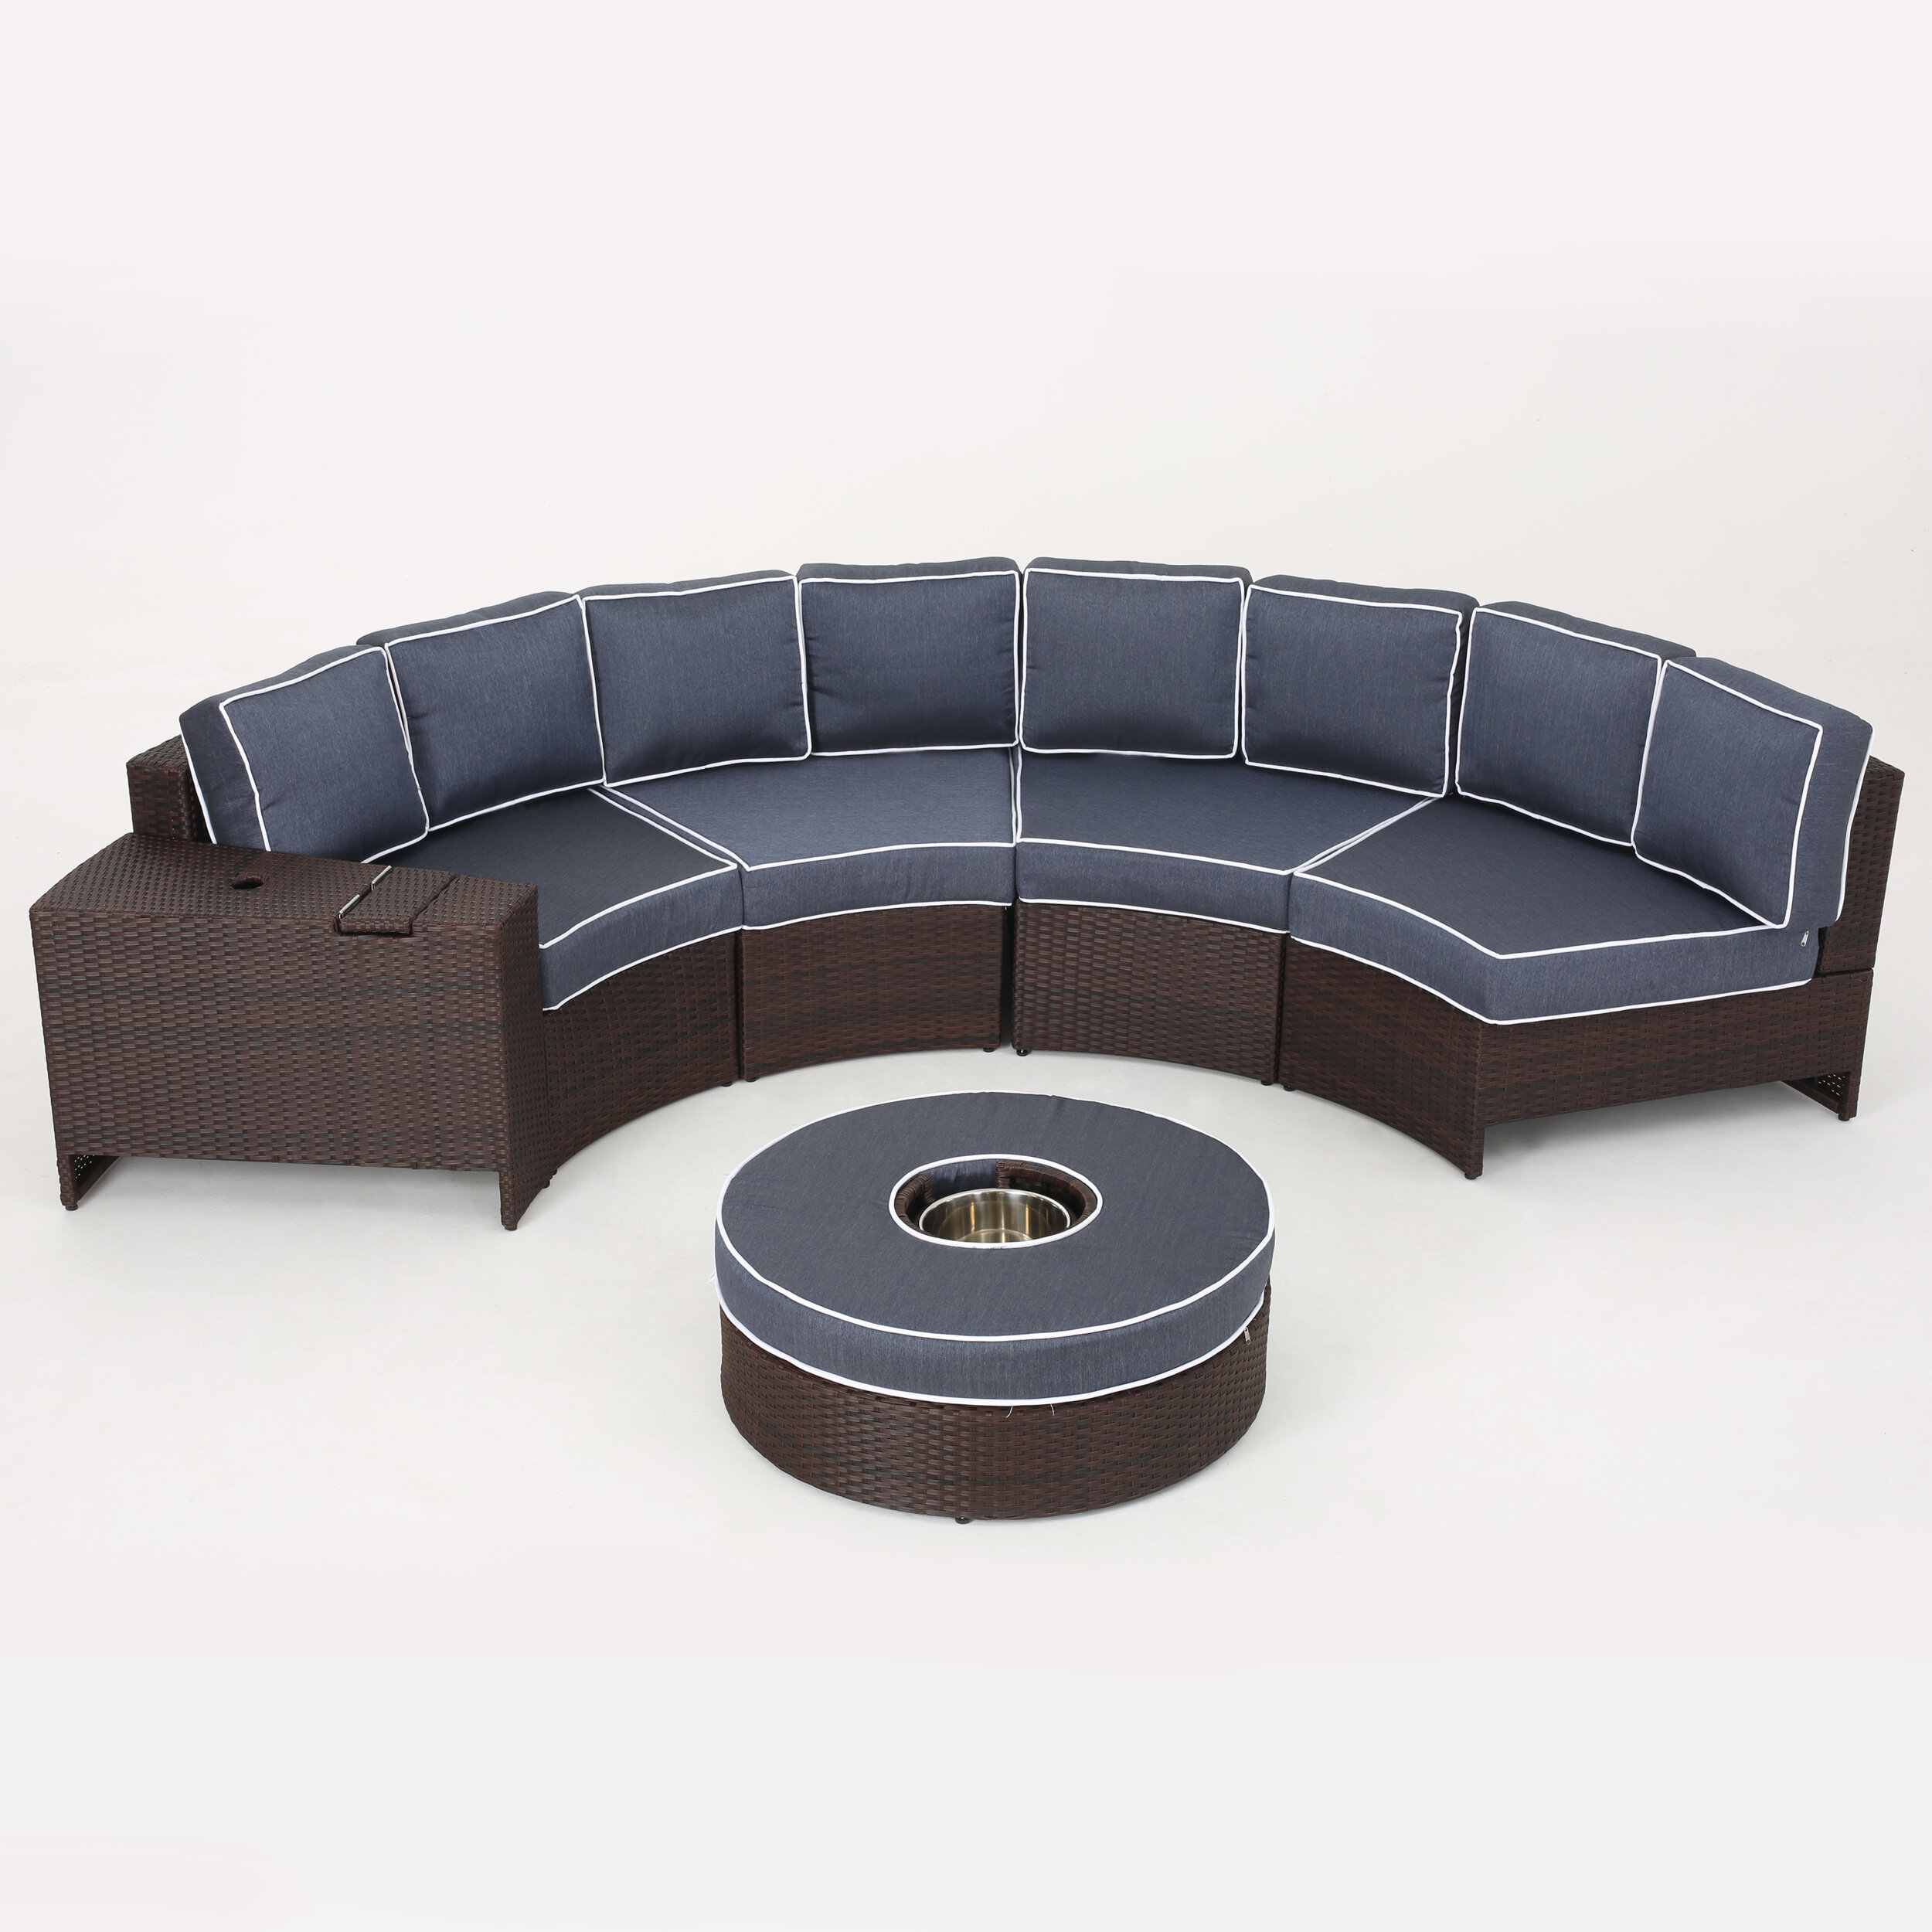 Bermuda 6 Piece Sectional Seating Group with Cushions